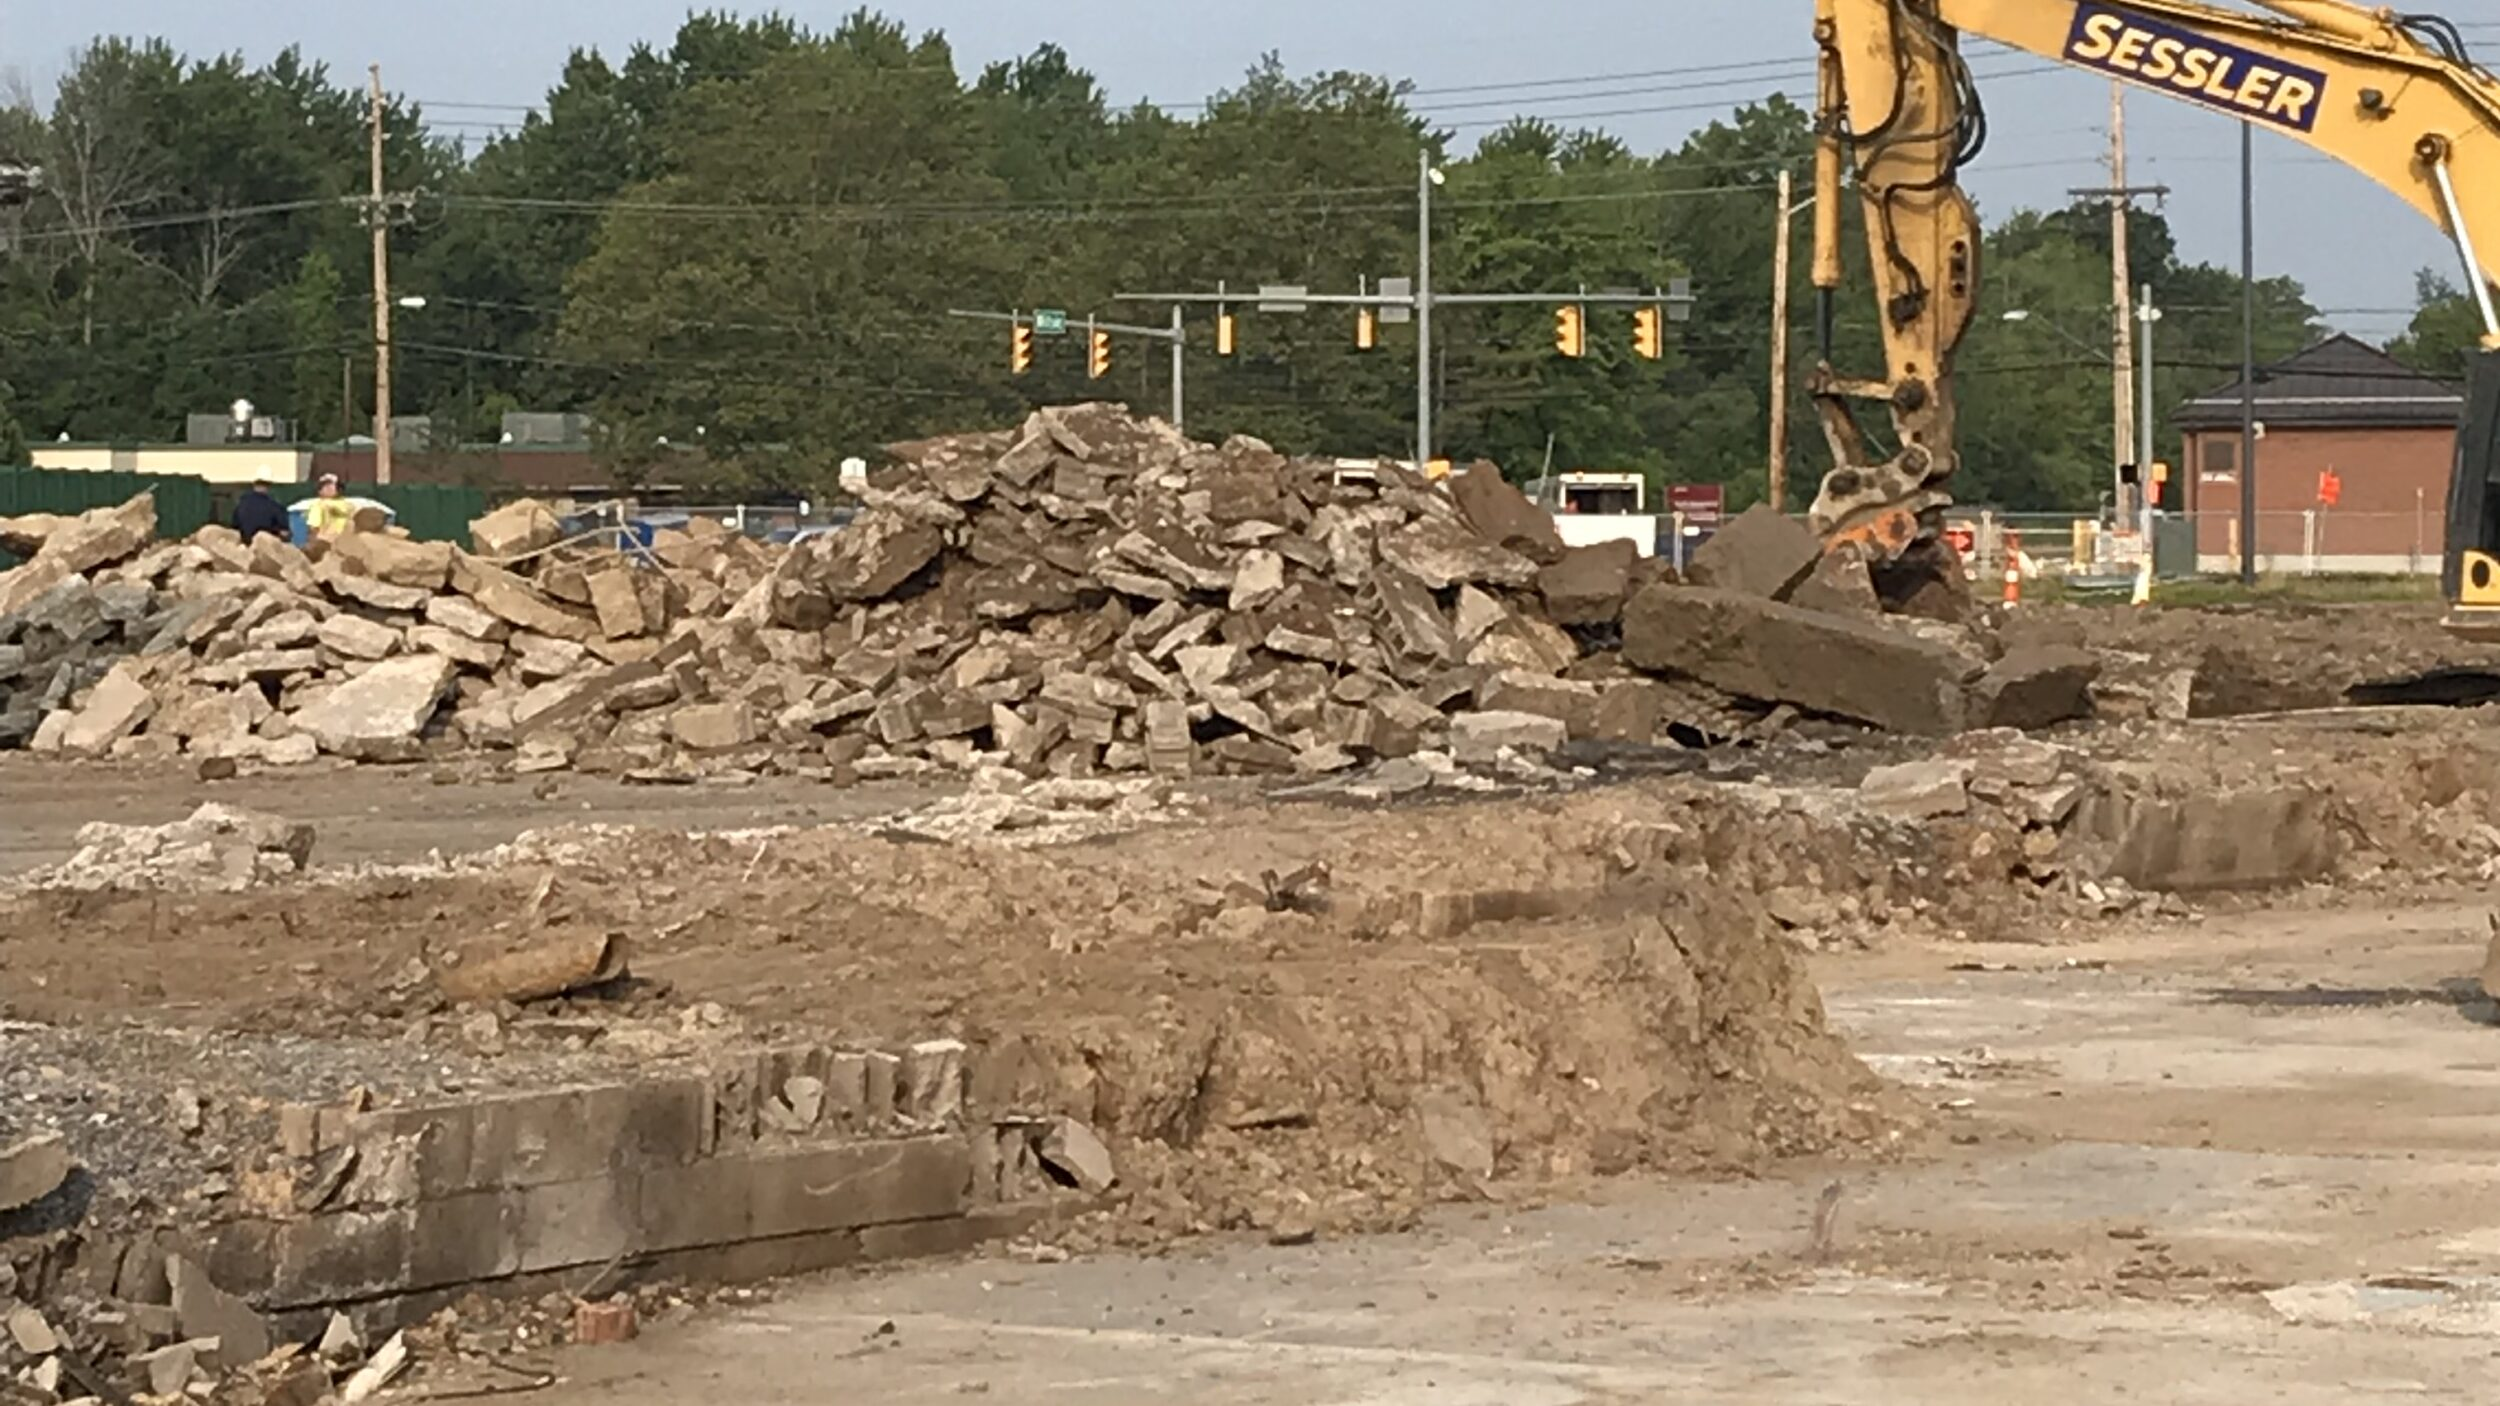 Excavator moving debris